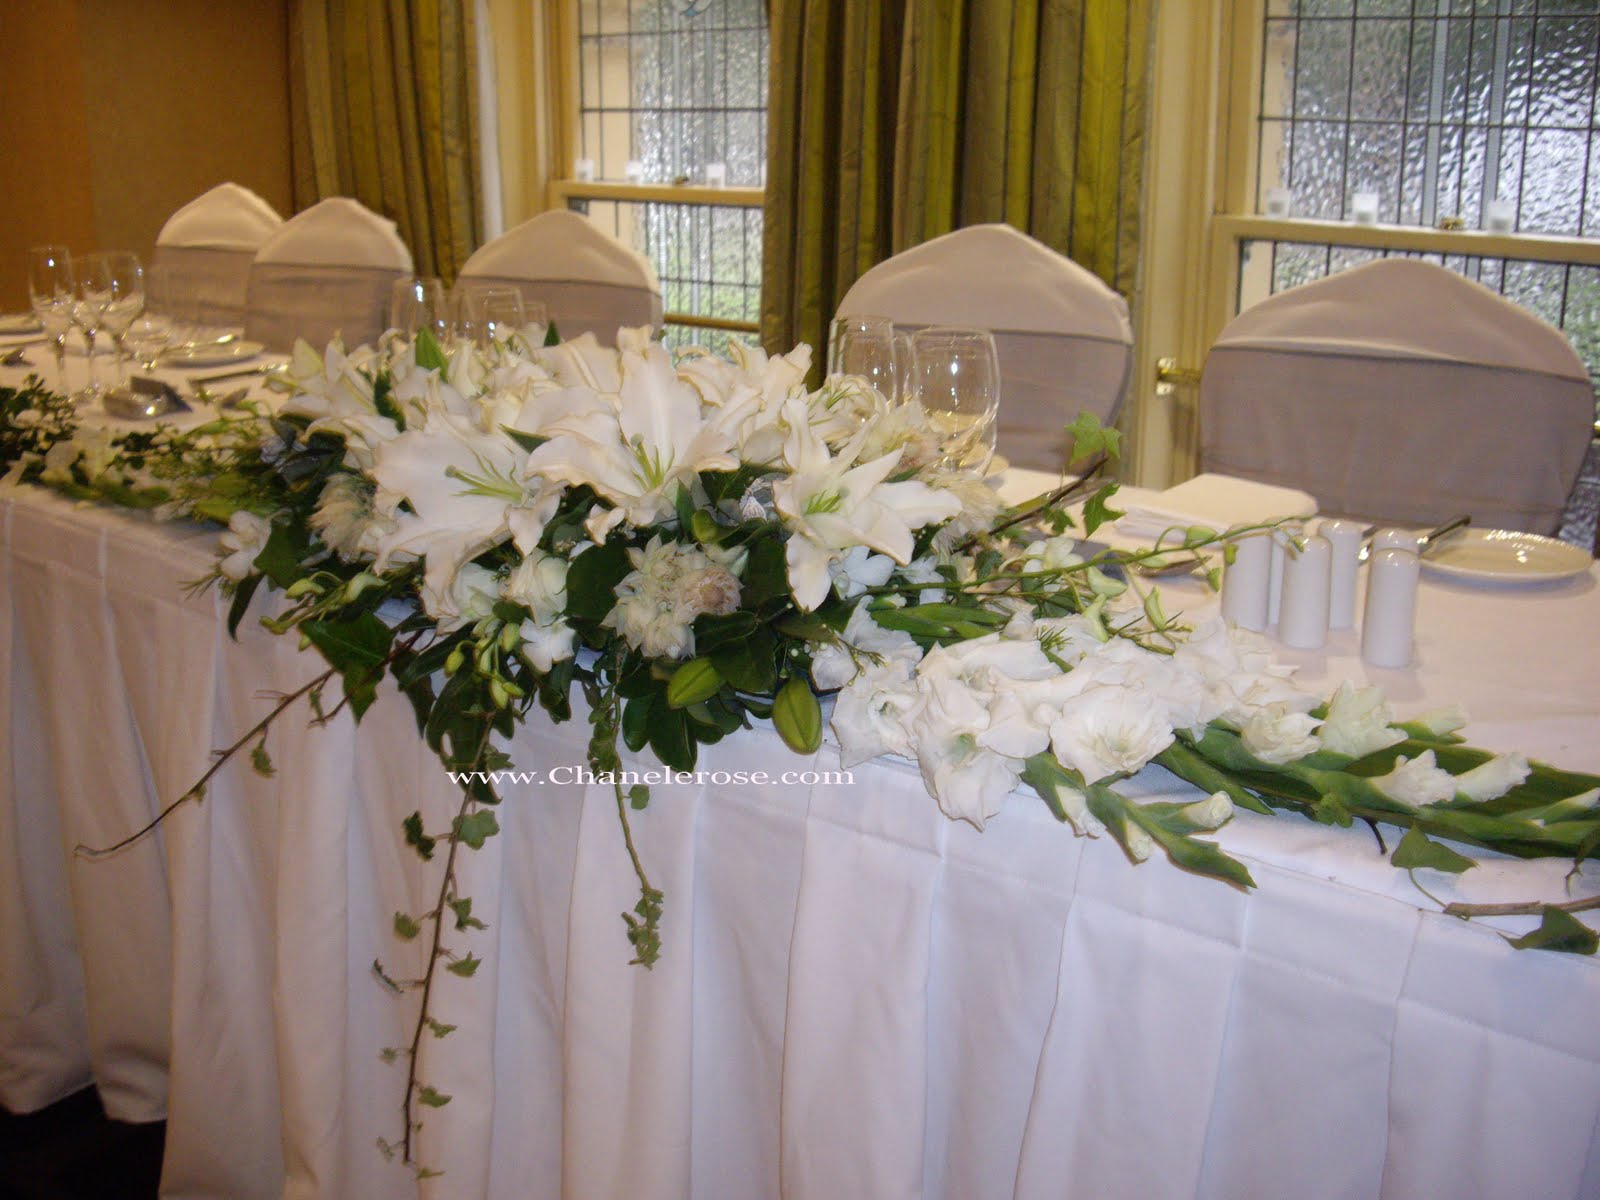 Chanele rose flowers blog sydney wedding stylist for Wedding party table decorations